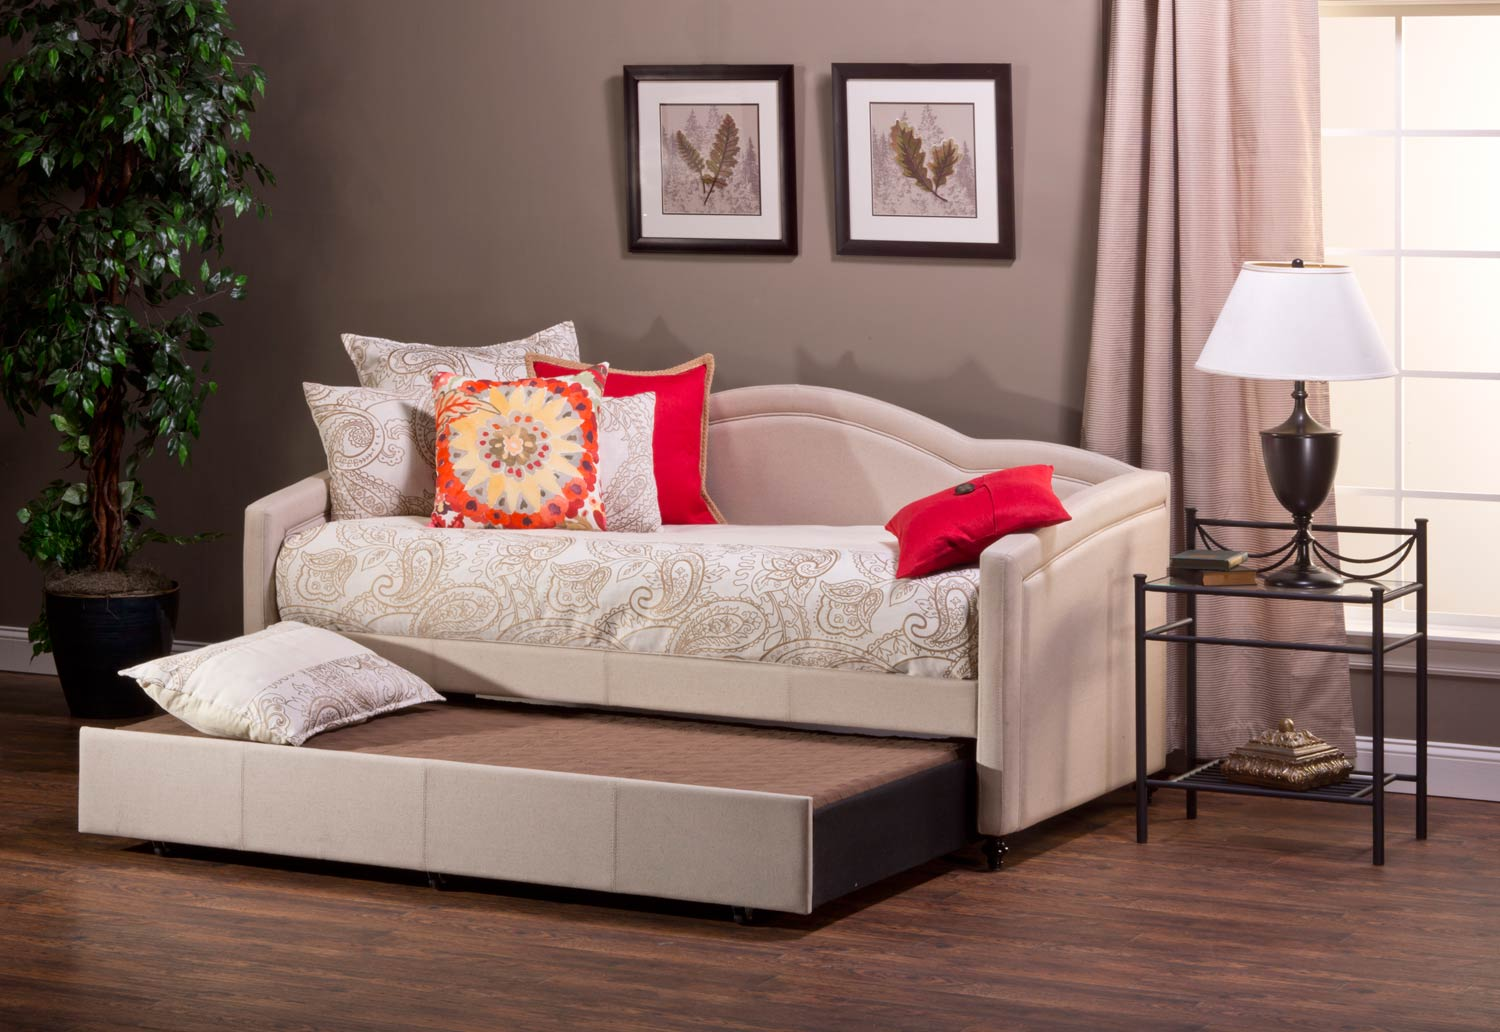 furniture mart daybed